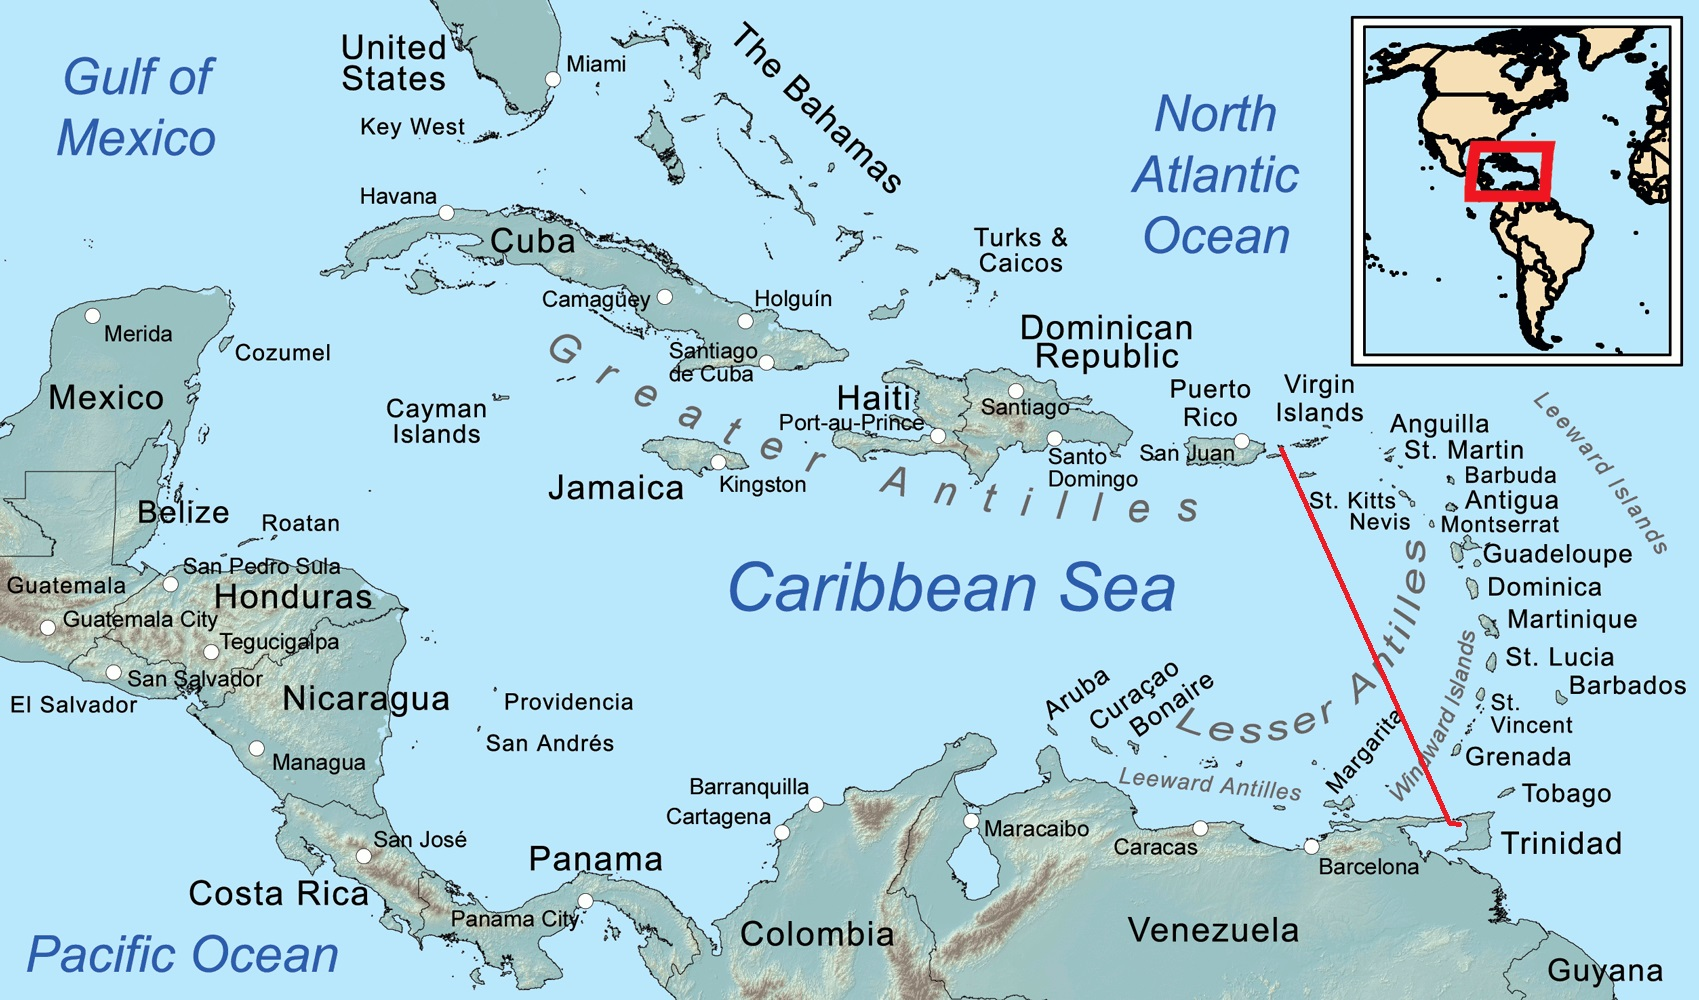 The 520nm passage route from Trinidad to Culebra Island off Puerto Rico.